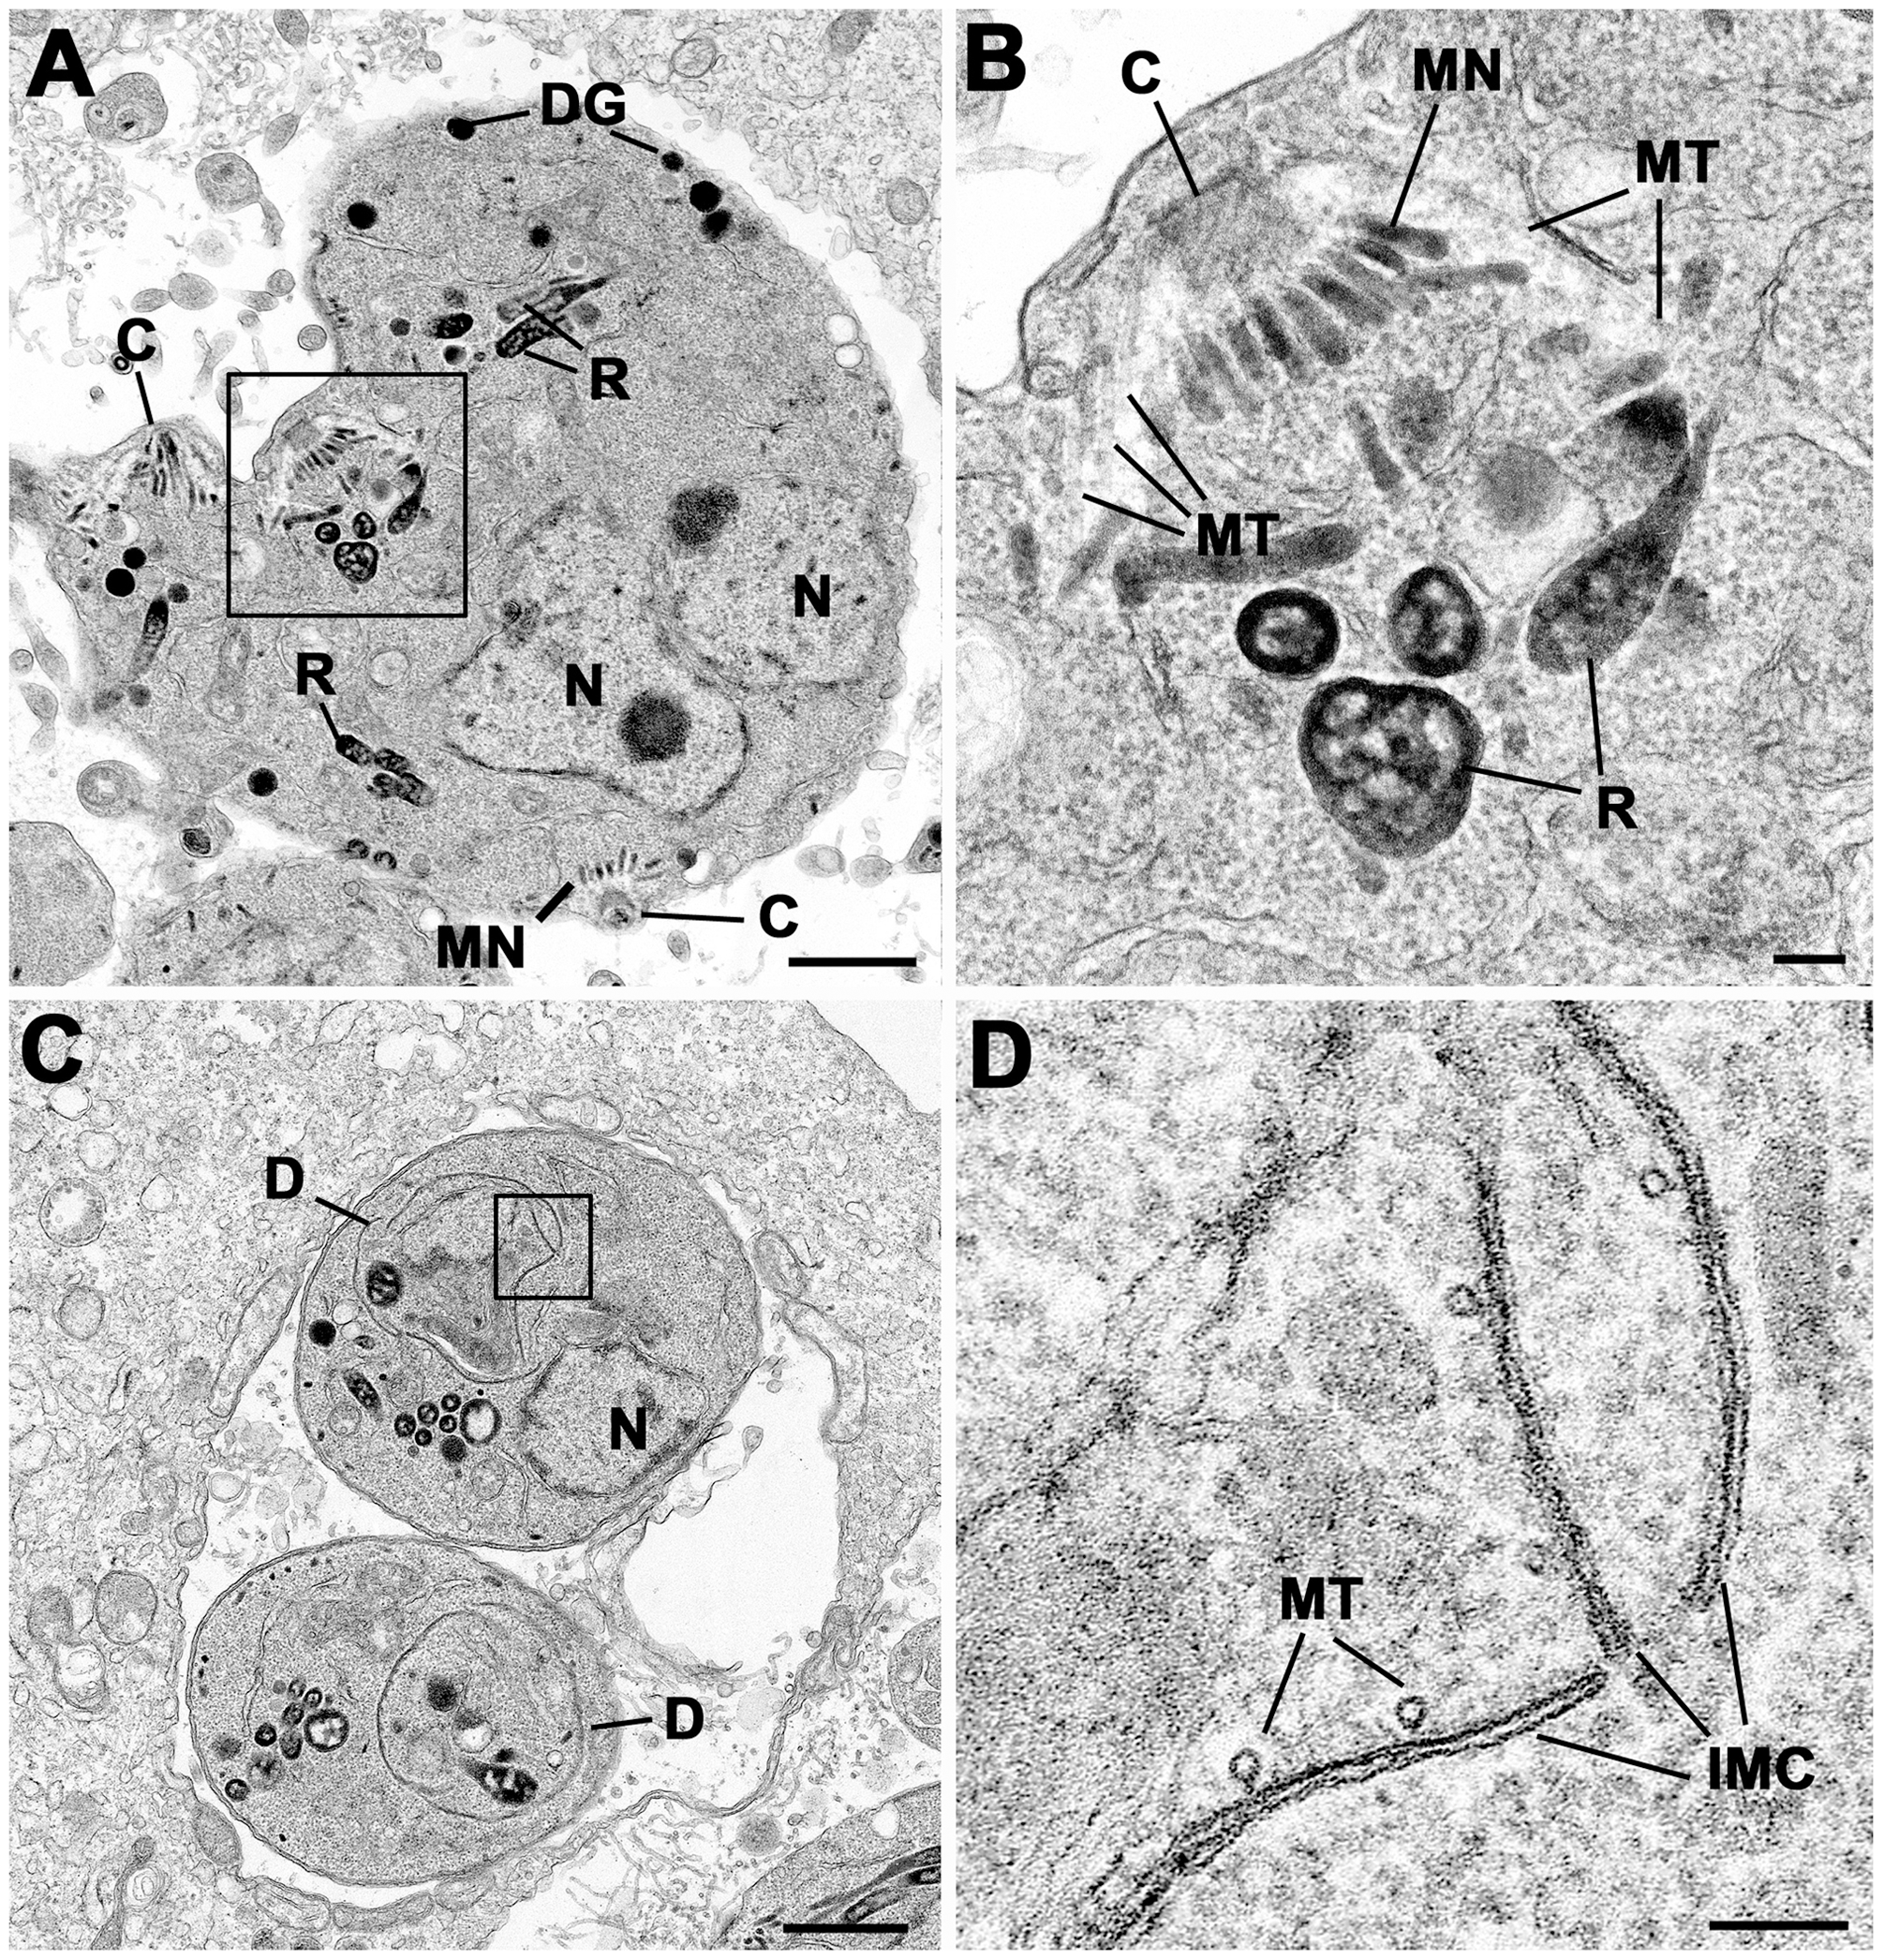 Electron micrographs of parasites cultured with Shld-1.